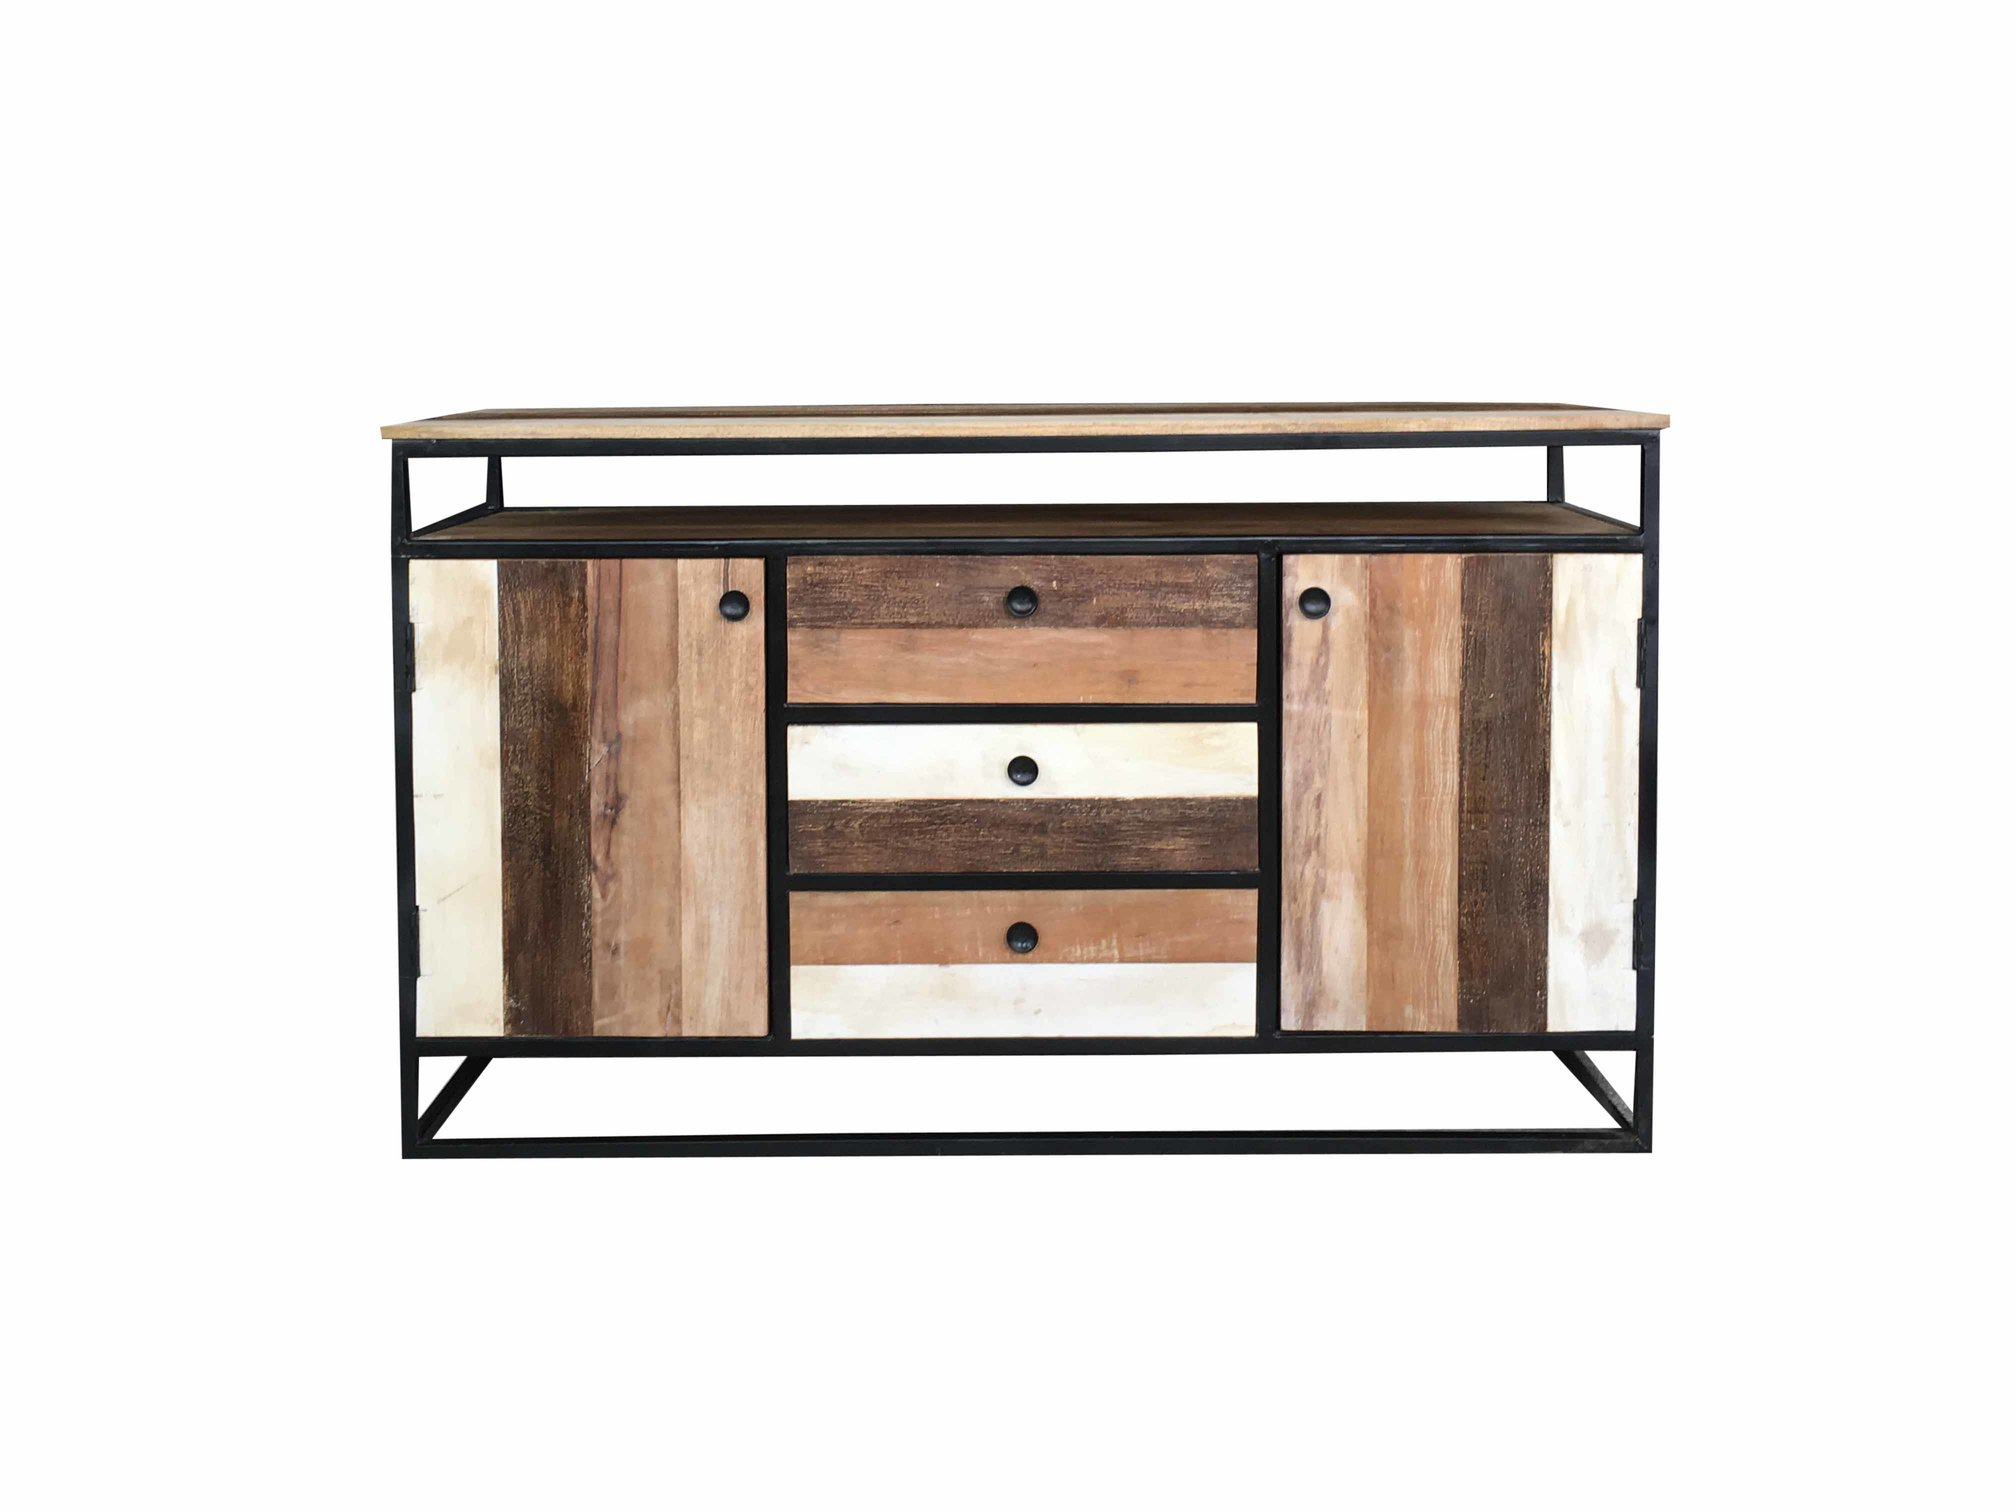 Mango Wood 2 Door/2 Drawer Sideboards In Most Popular Industrial Reclaimed Mango Wood 2 Door 3 Drawer Sideboard With Metal (View 17 of 20)